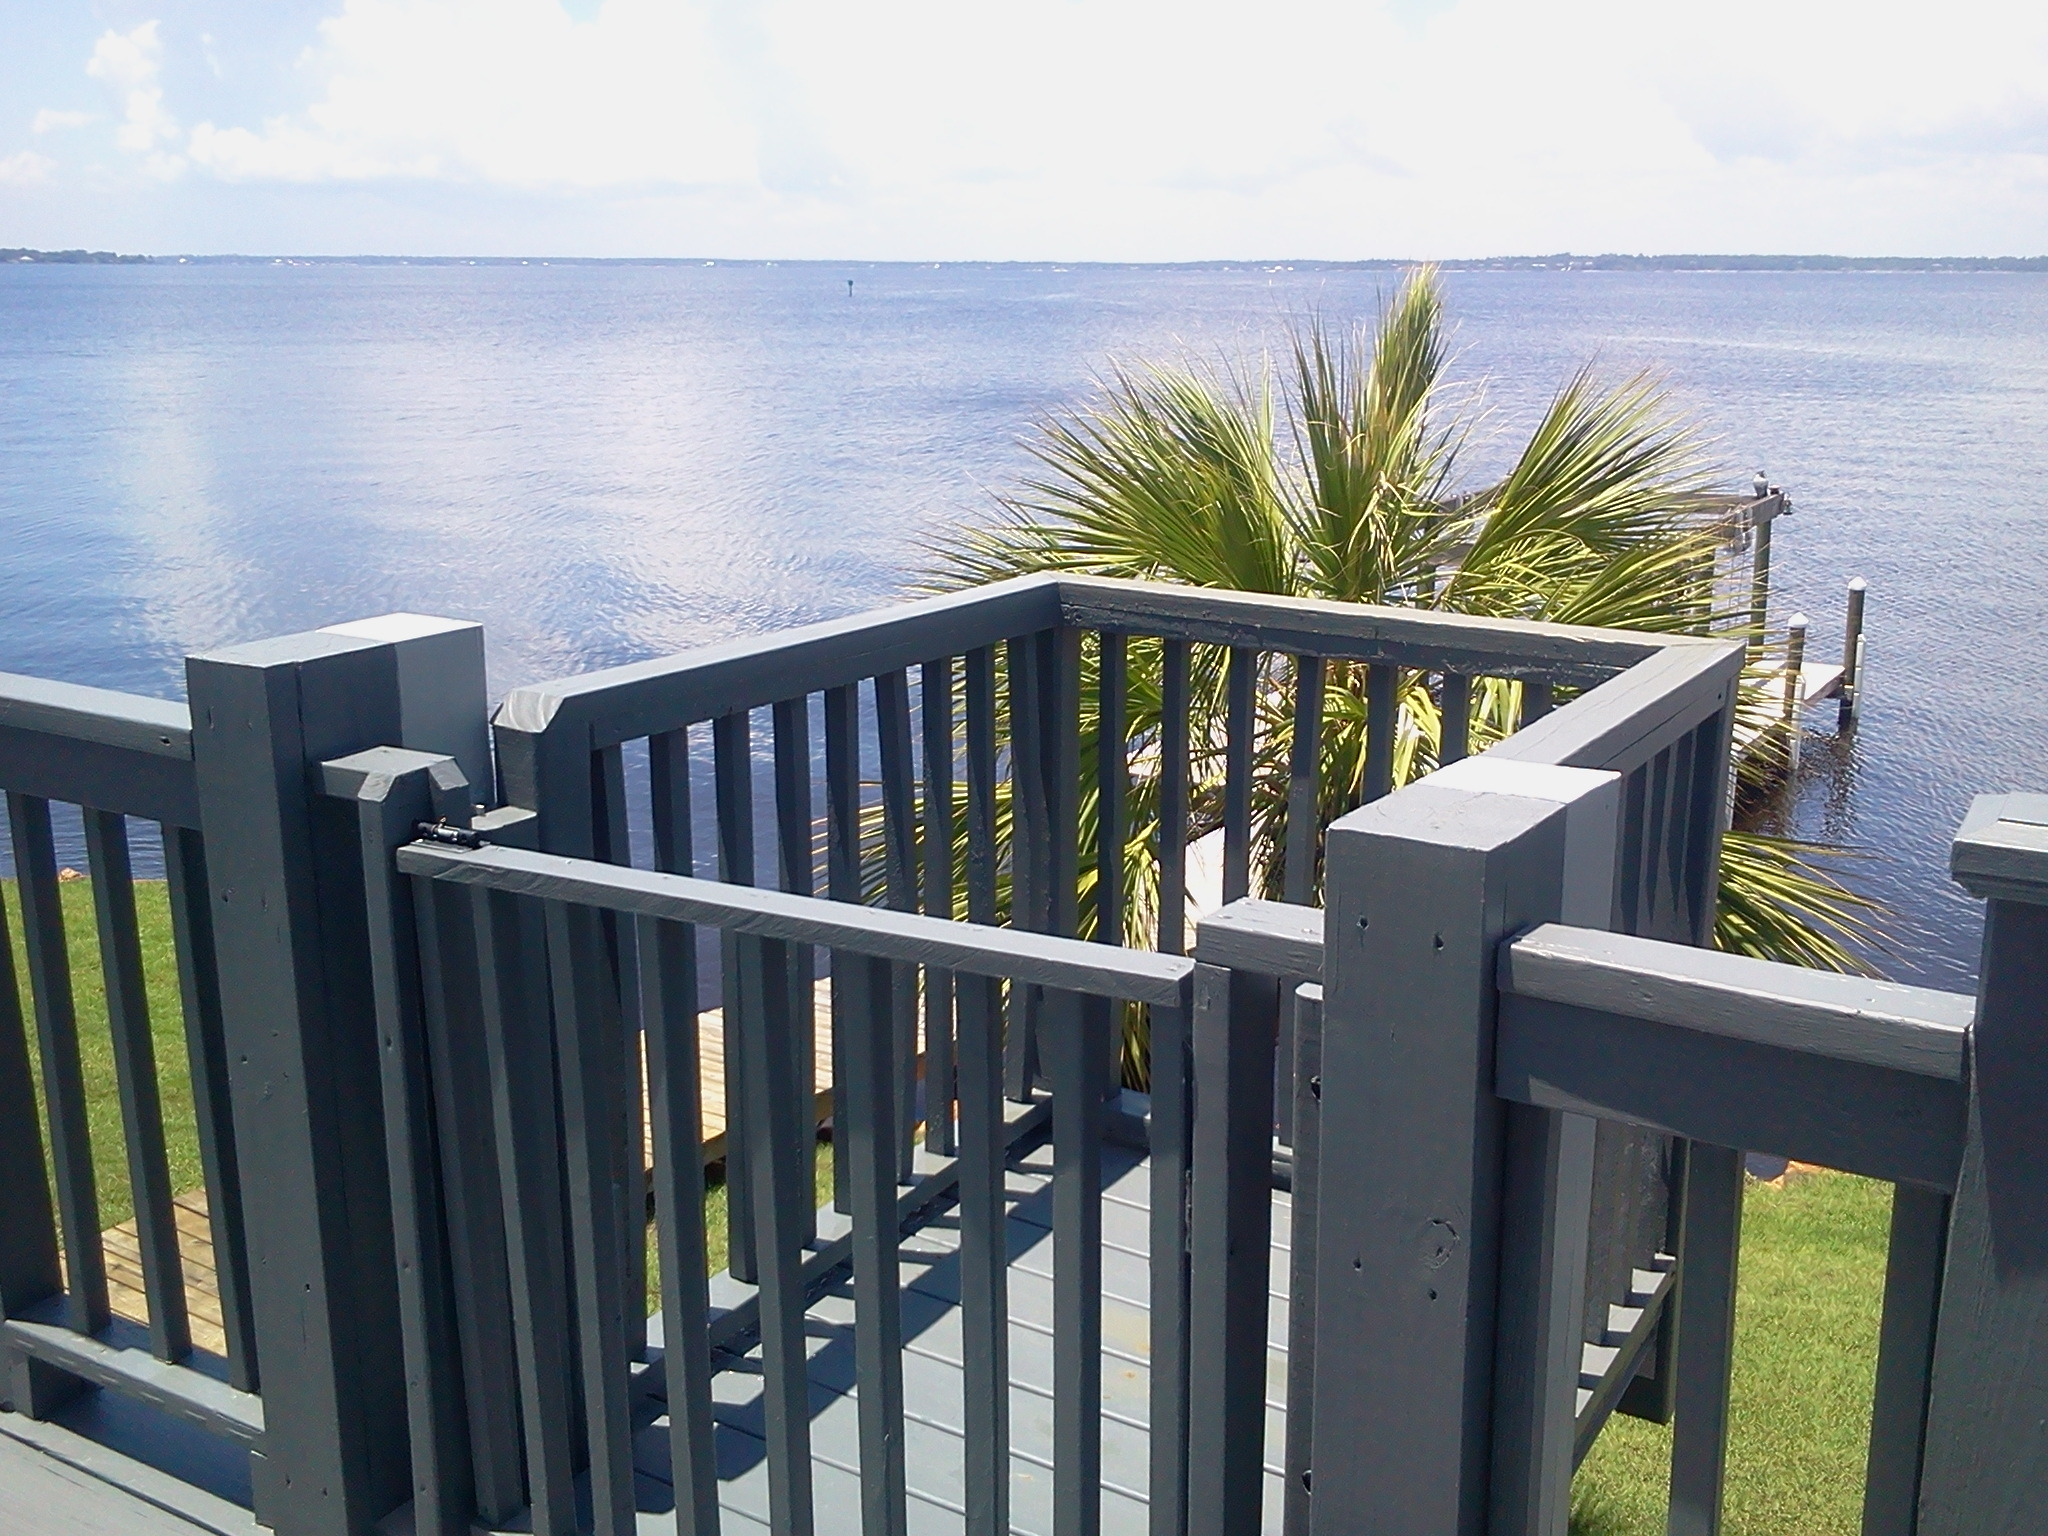 Aquarius elevators and lifts llc in pensacola 954 west for Beach house lifts